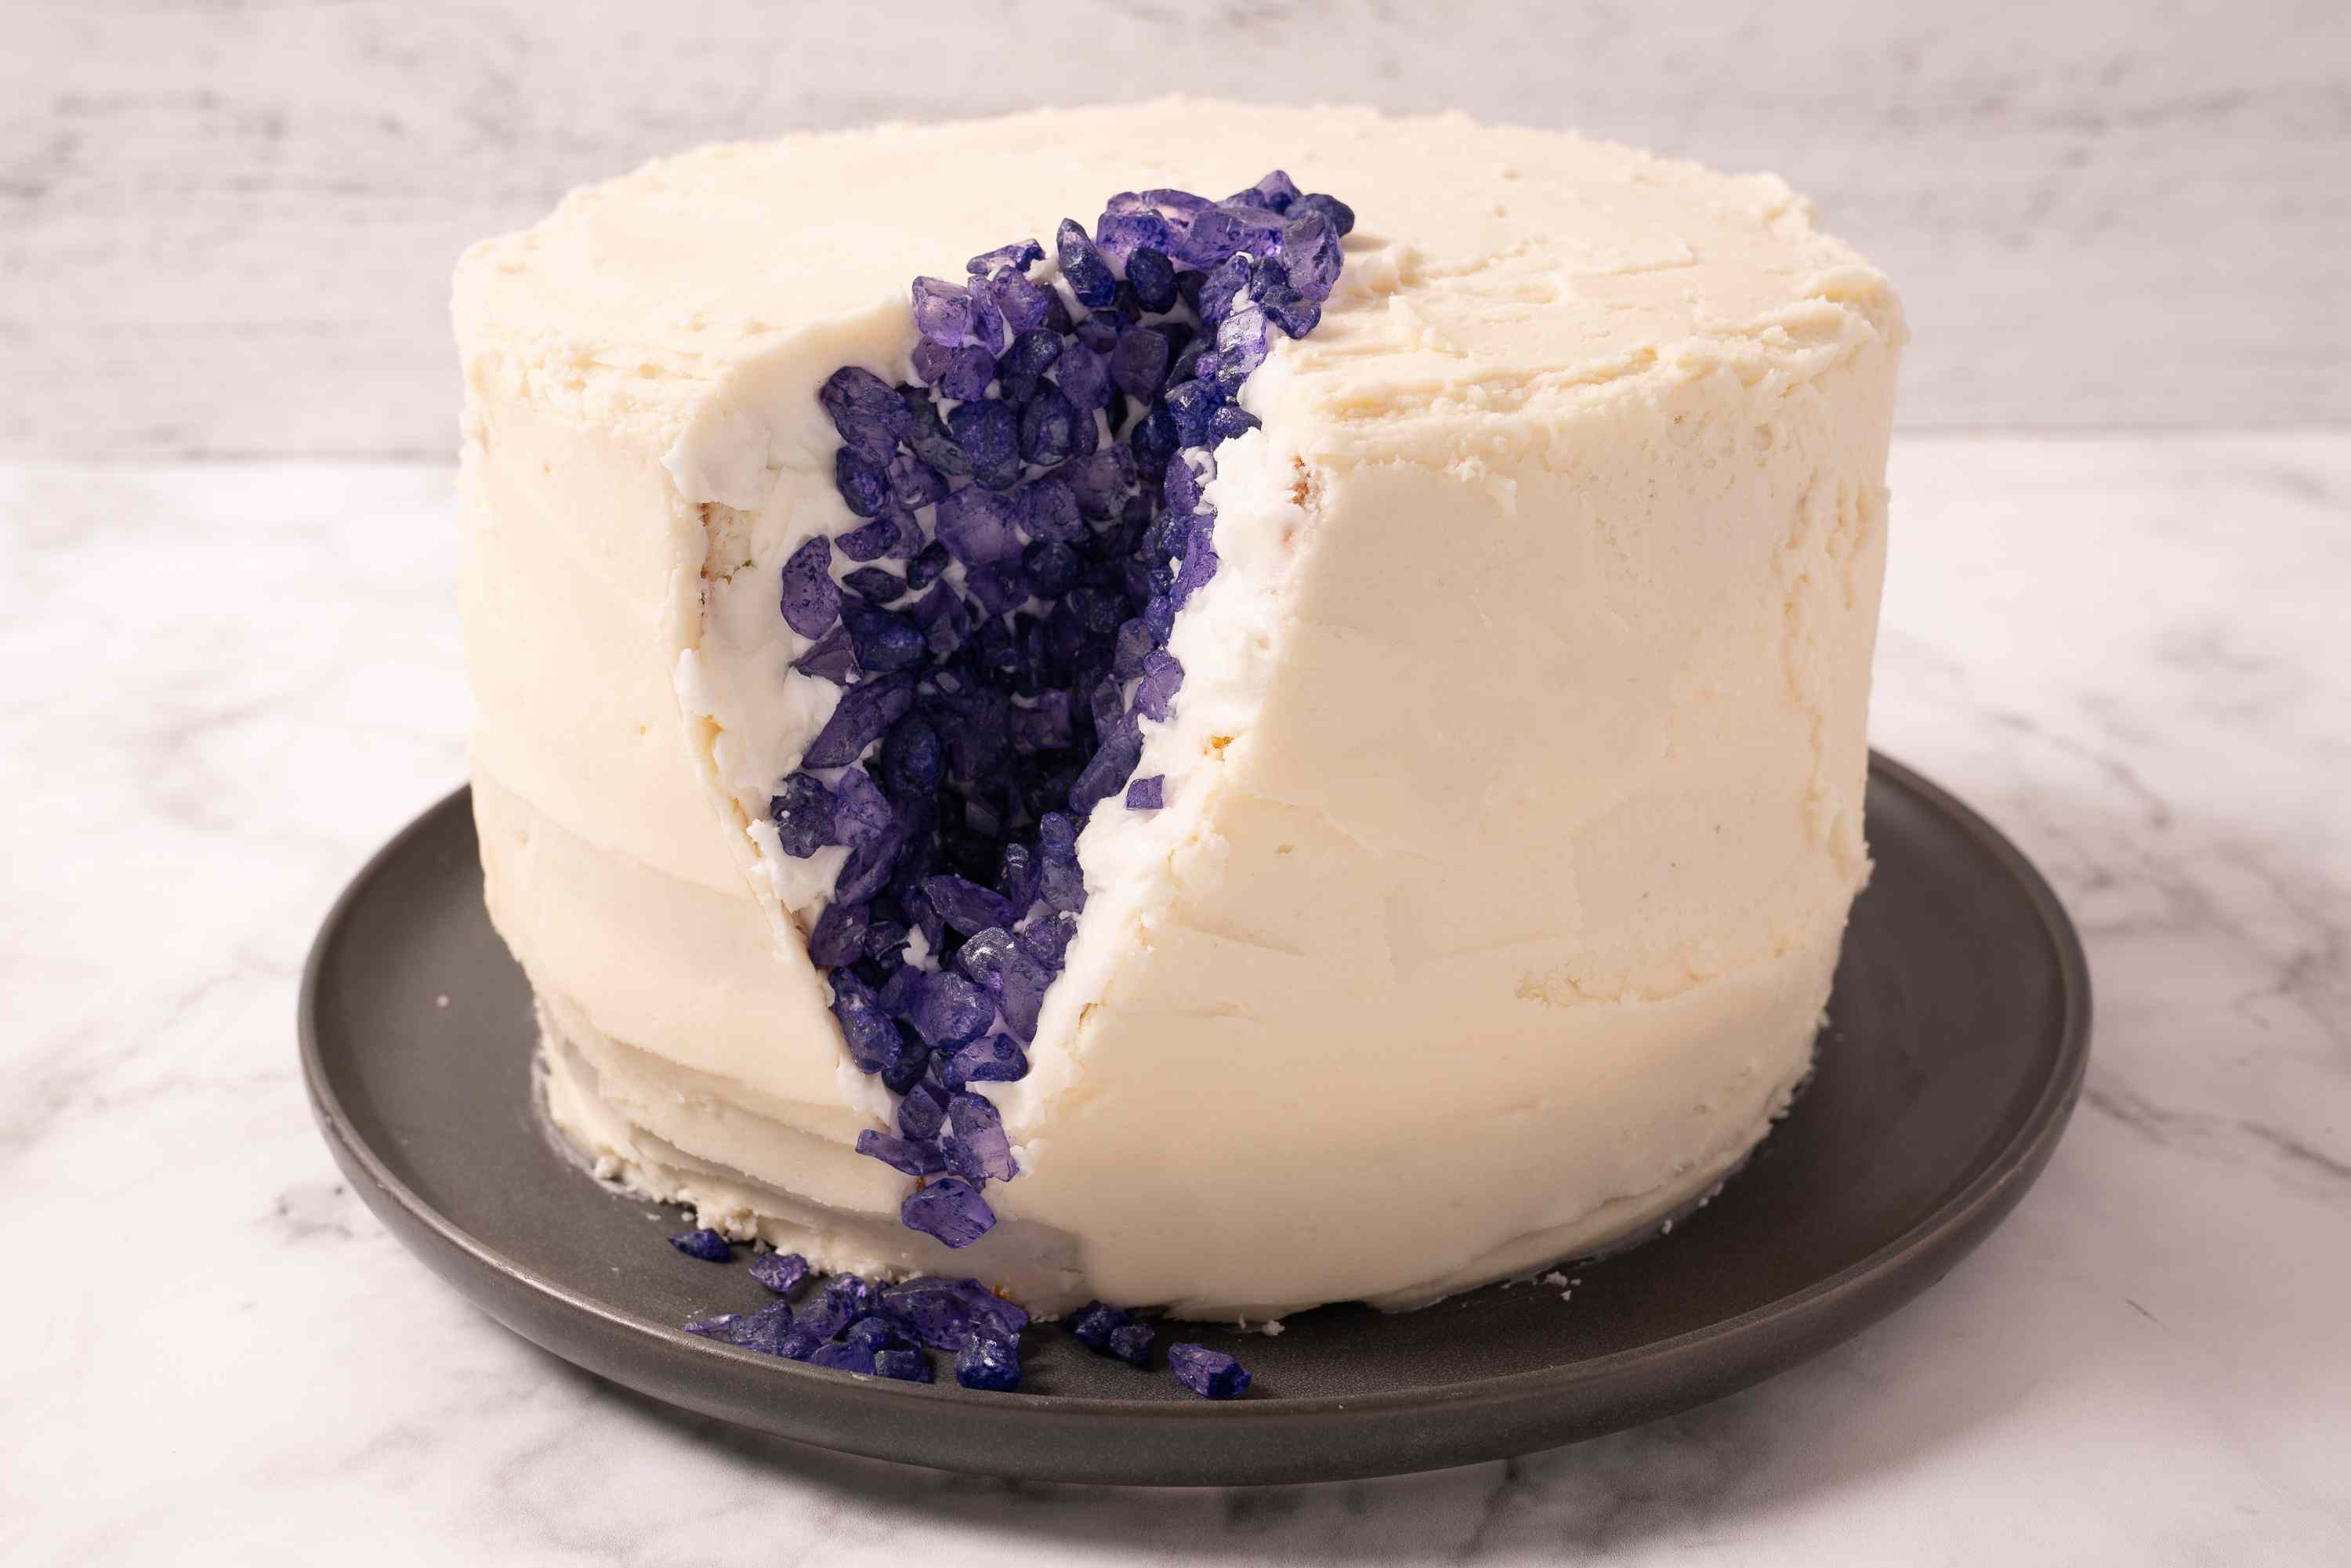 Cake crevasse frosted and studded with purple rock candy